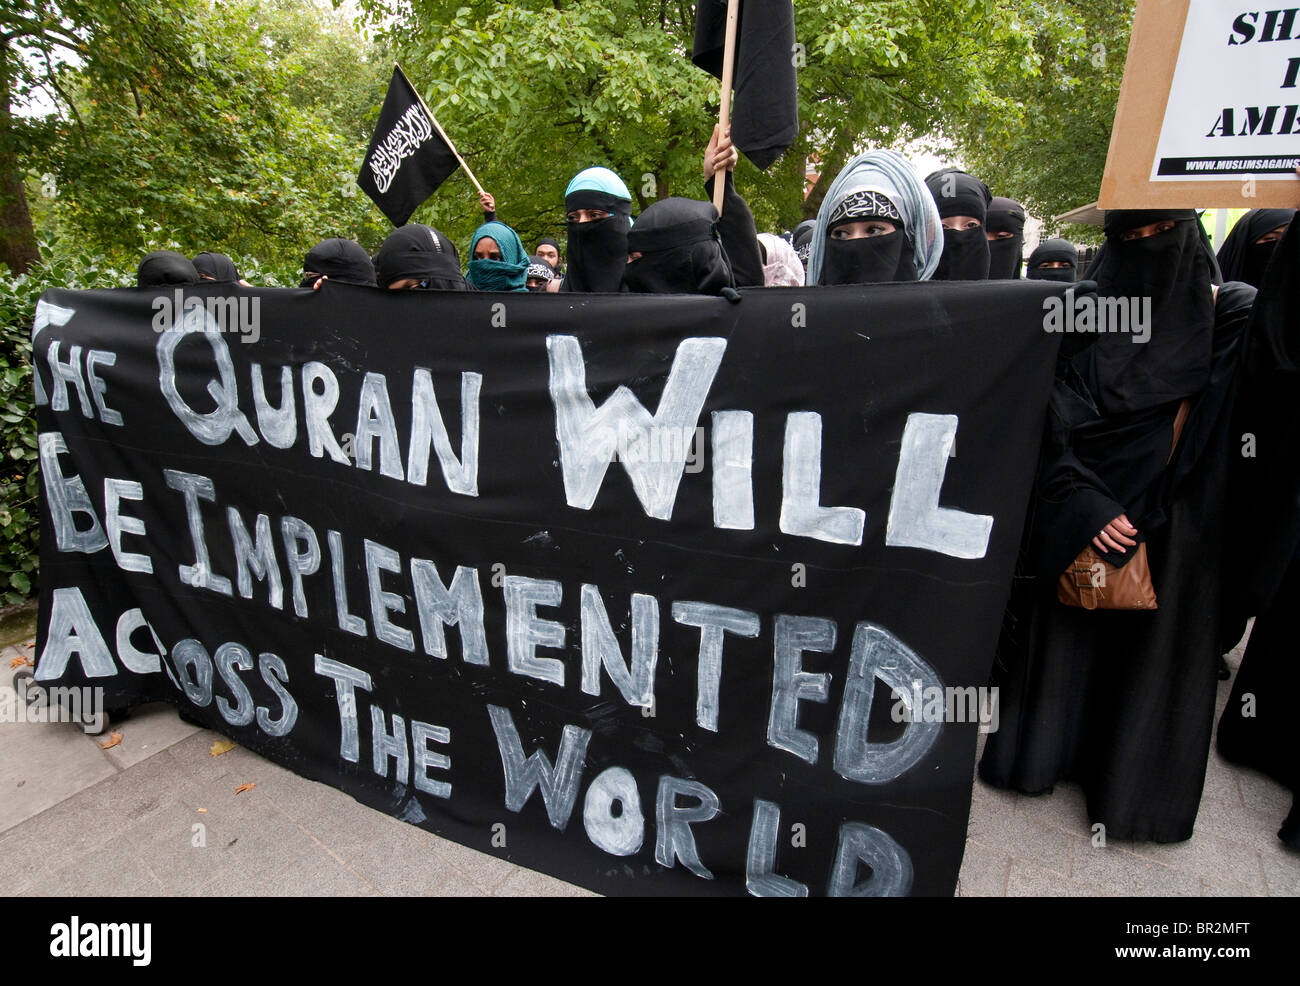 Extremist group 'Muslims Against the Crusades', led by Anjem Choudary held a protest against the threatened - Stock Image